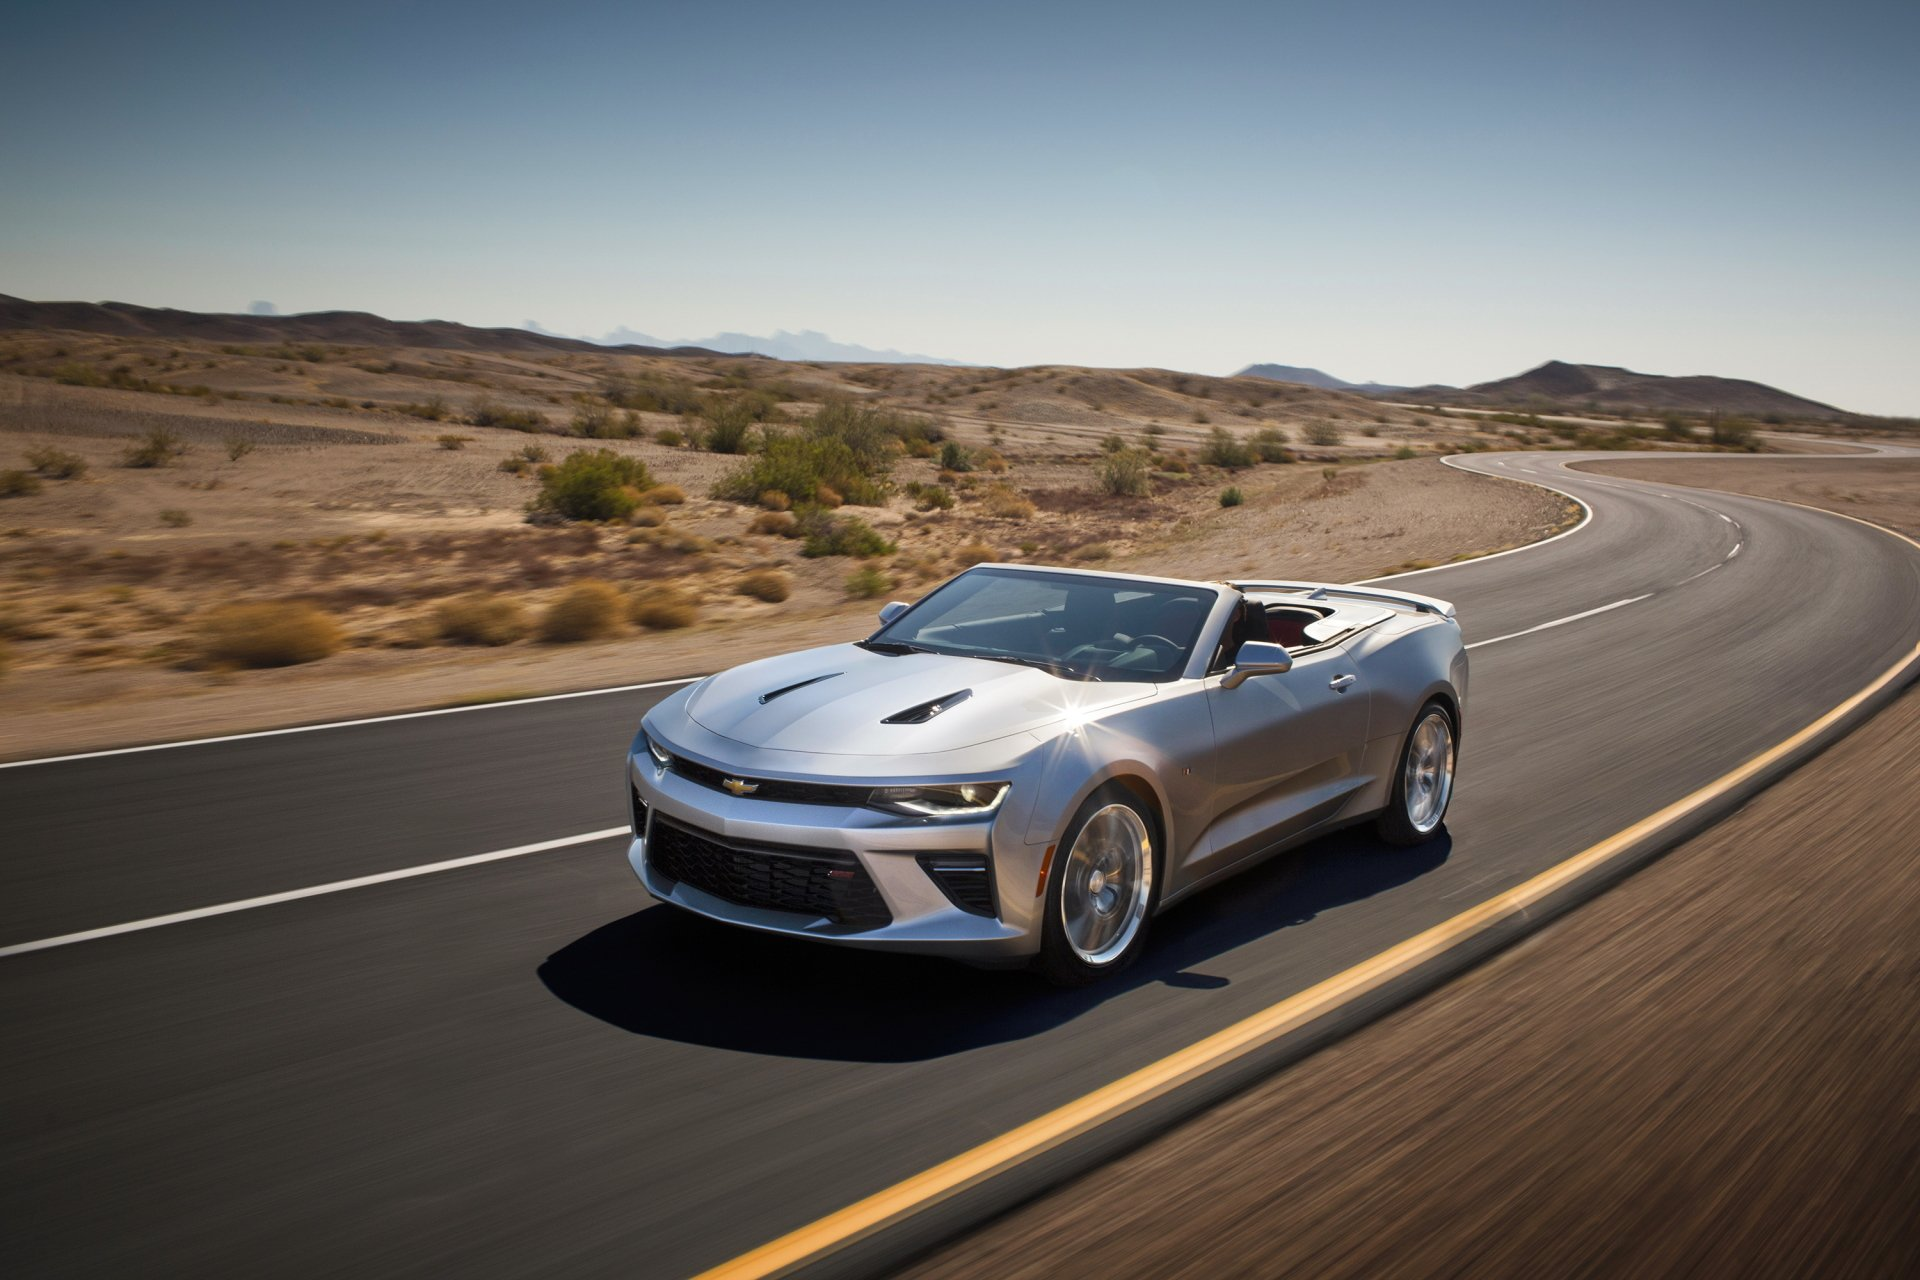 Vehicles - Chevrolet Camaro SS  Desert Vehicle Car Chevrolet Chevrolet Camaro Landscape Road Silver Car Sport Car Chevrolet Camaro Convertible Wallpaper